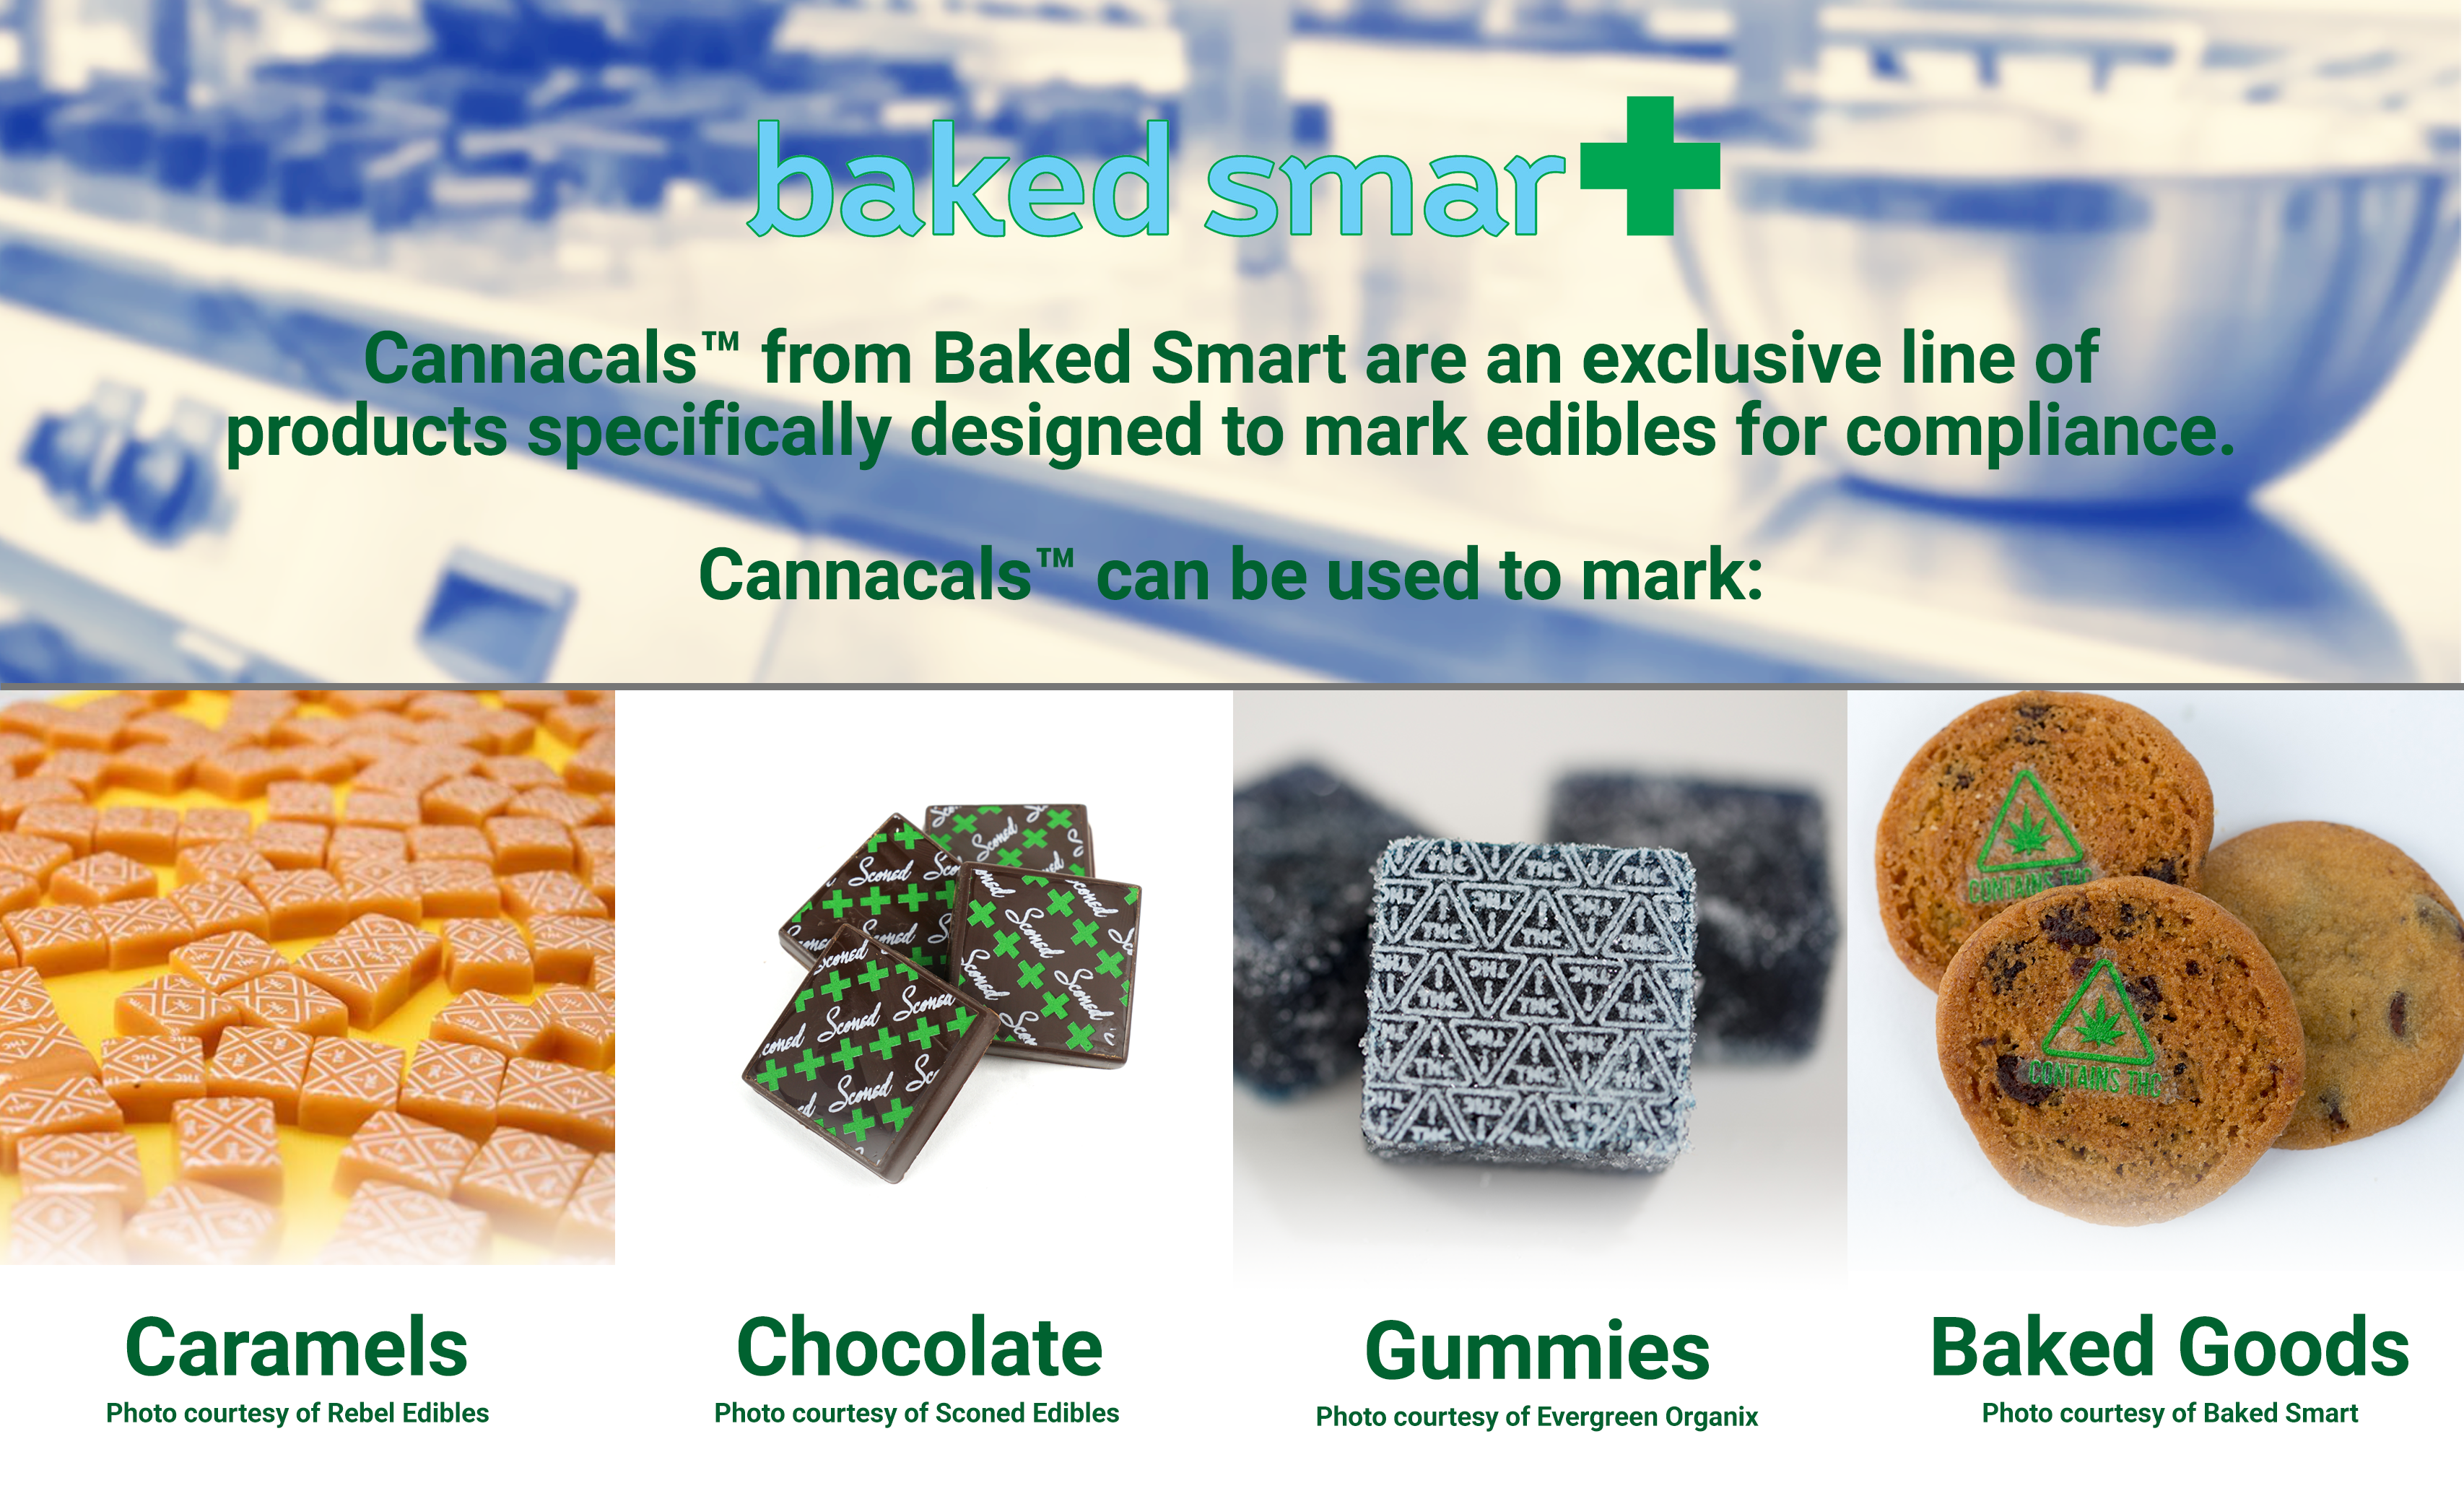 cannabis edibles marked with cannacals thc and green cross symbols